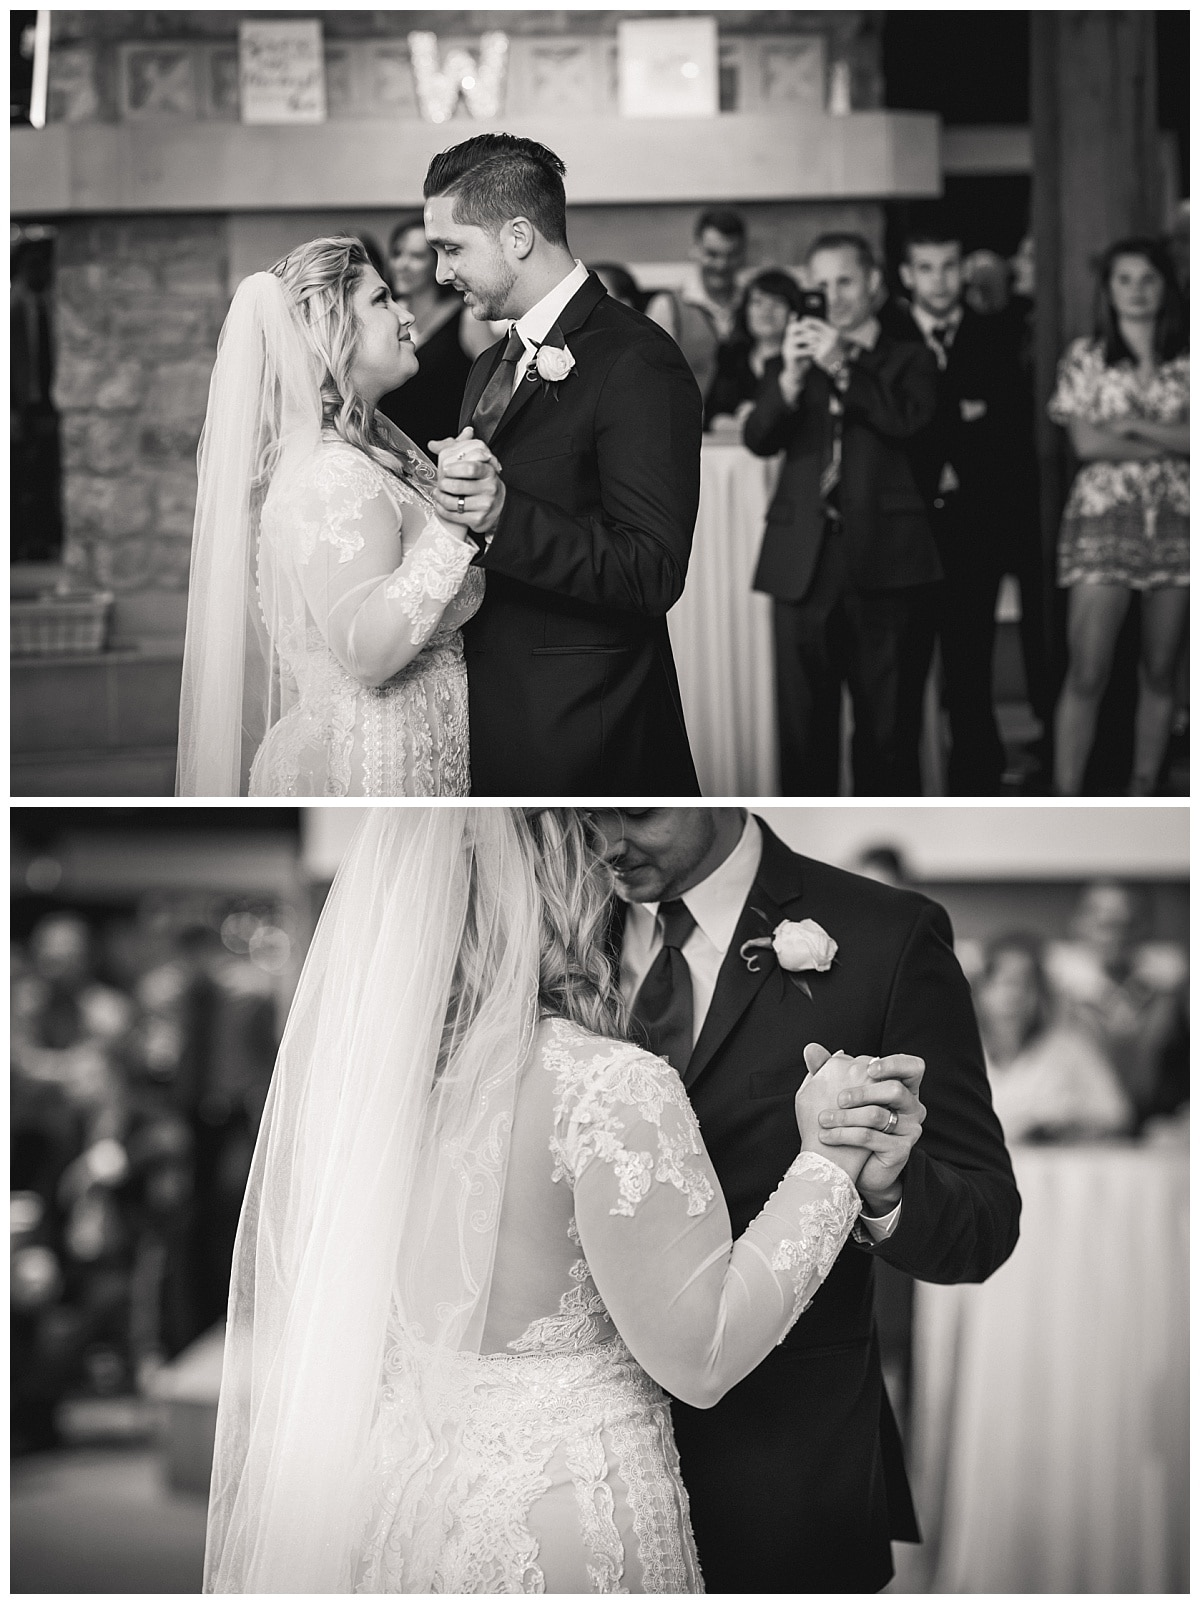 First Dance photo - Wedding photography by Curtis Wallis